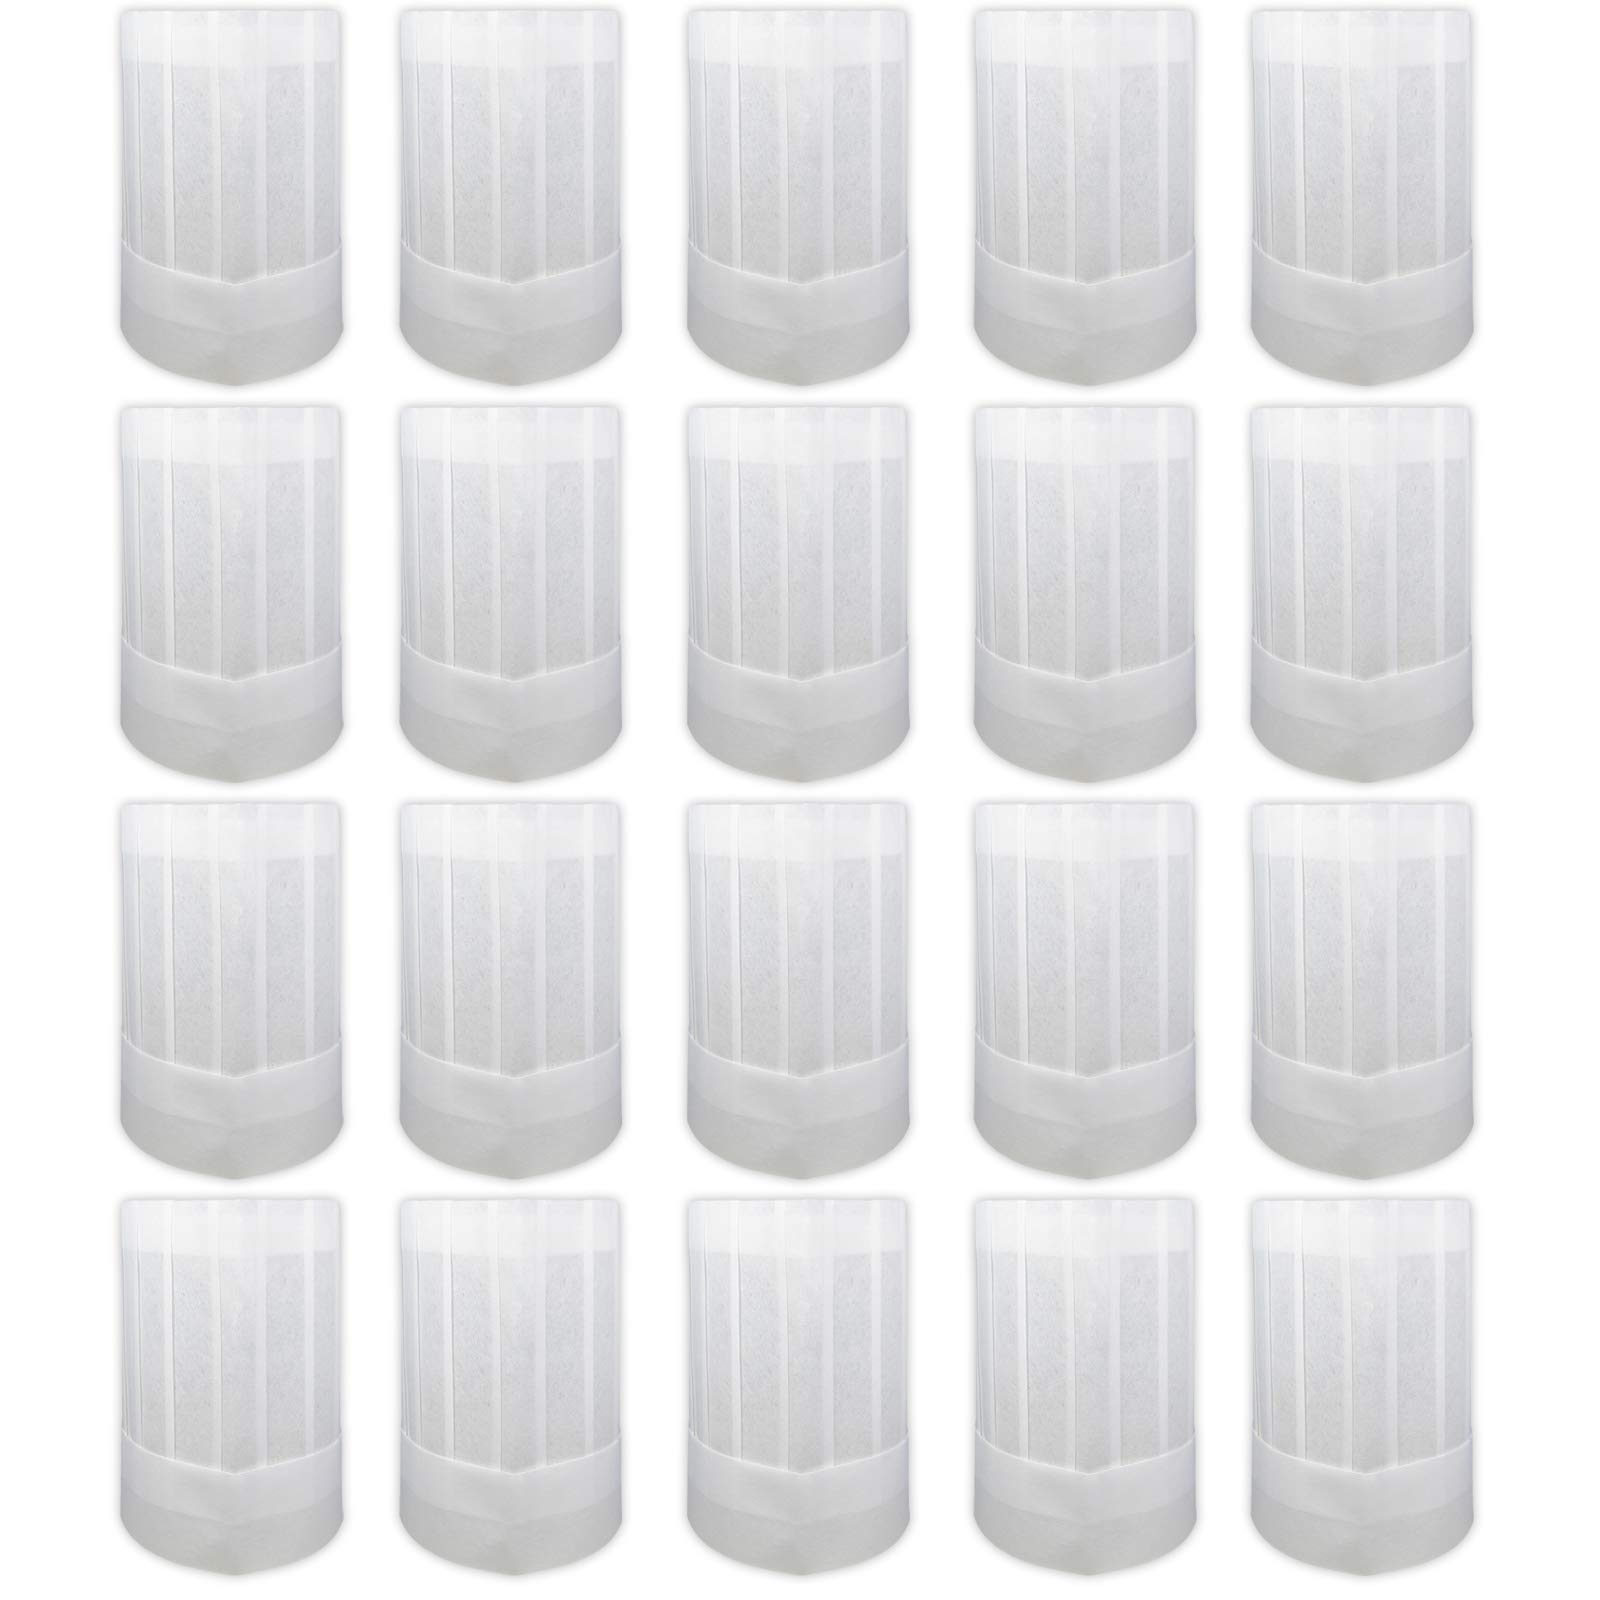 Chef Hats 20 Pcs | Disposable Tall White Paper Culinary Hat - Multi-Set Pack | Chef Hats for Home Kitchen, Restaurants, Food Occasions, Classes and Parties | [9'' Tall] (20 Piece Count)